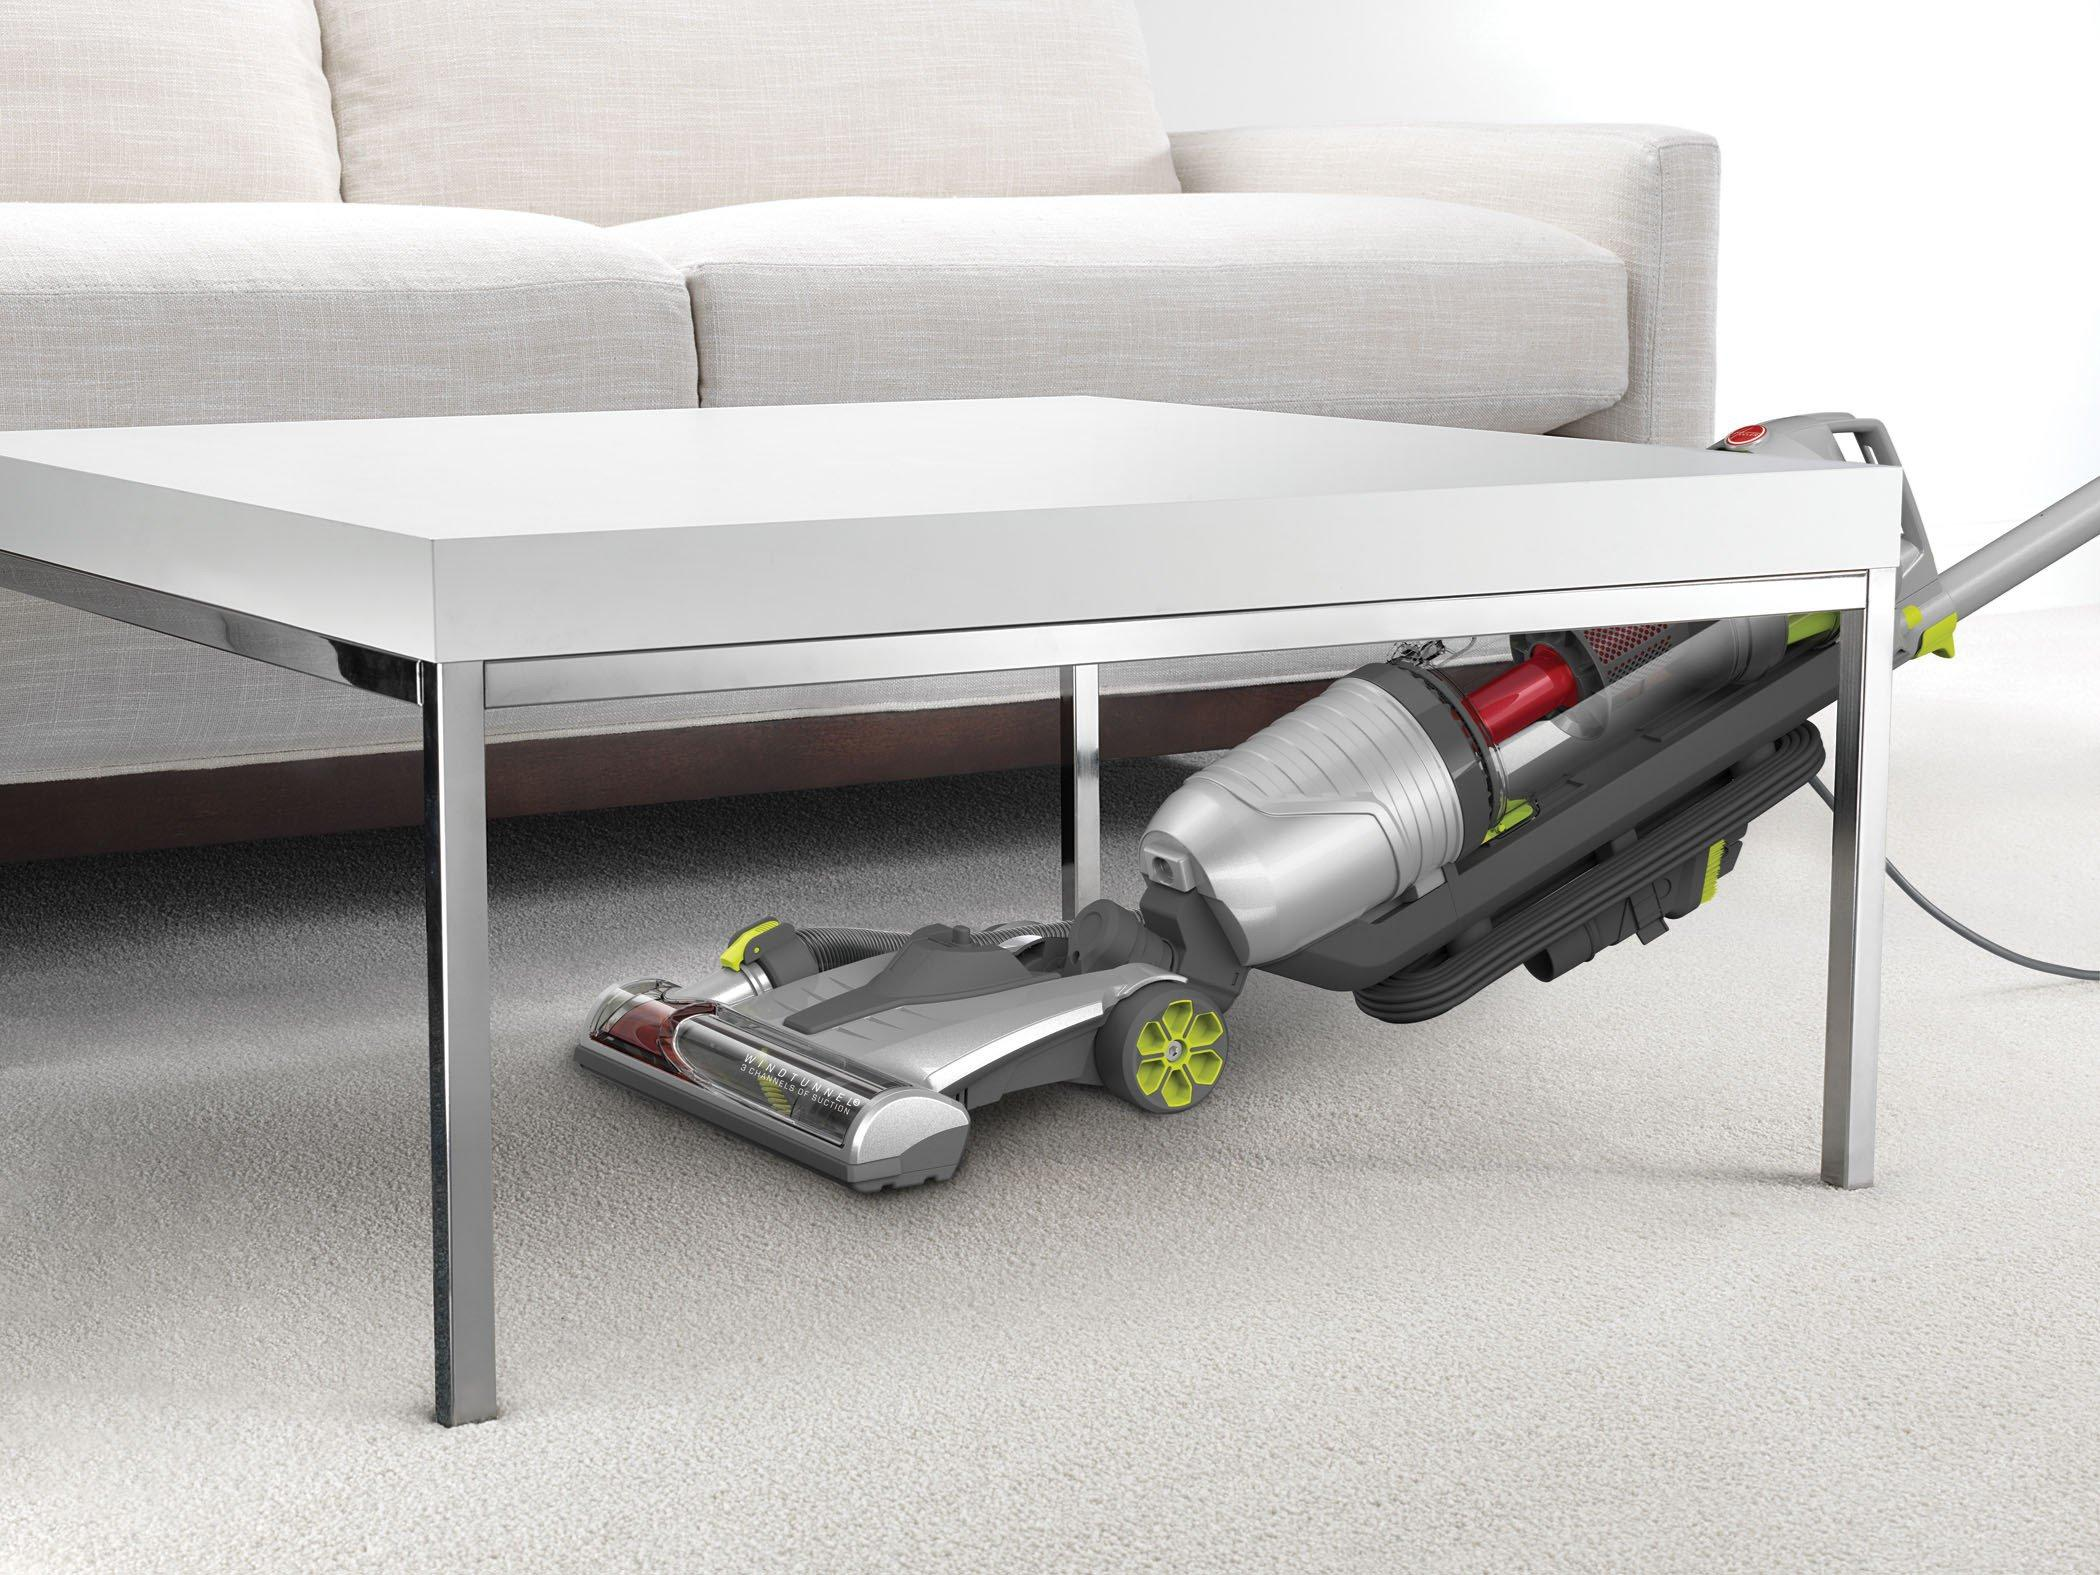 WindTunnel Air Sprint Upright Vacuum3